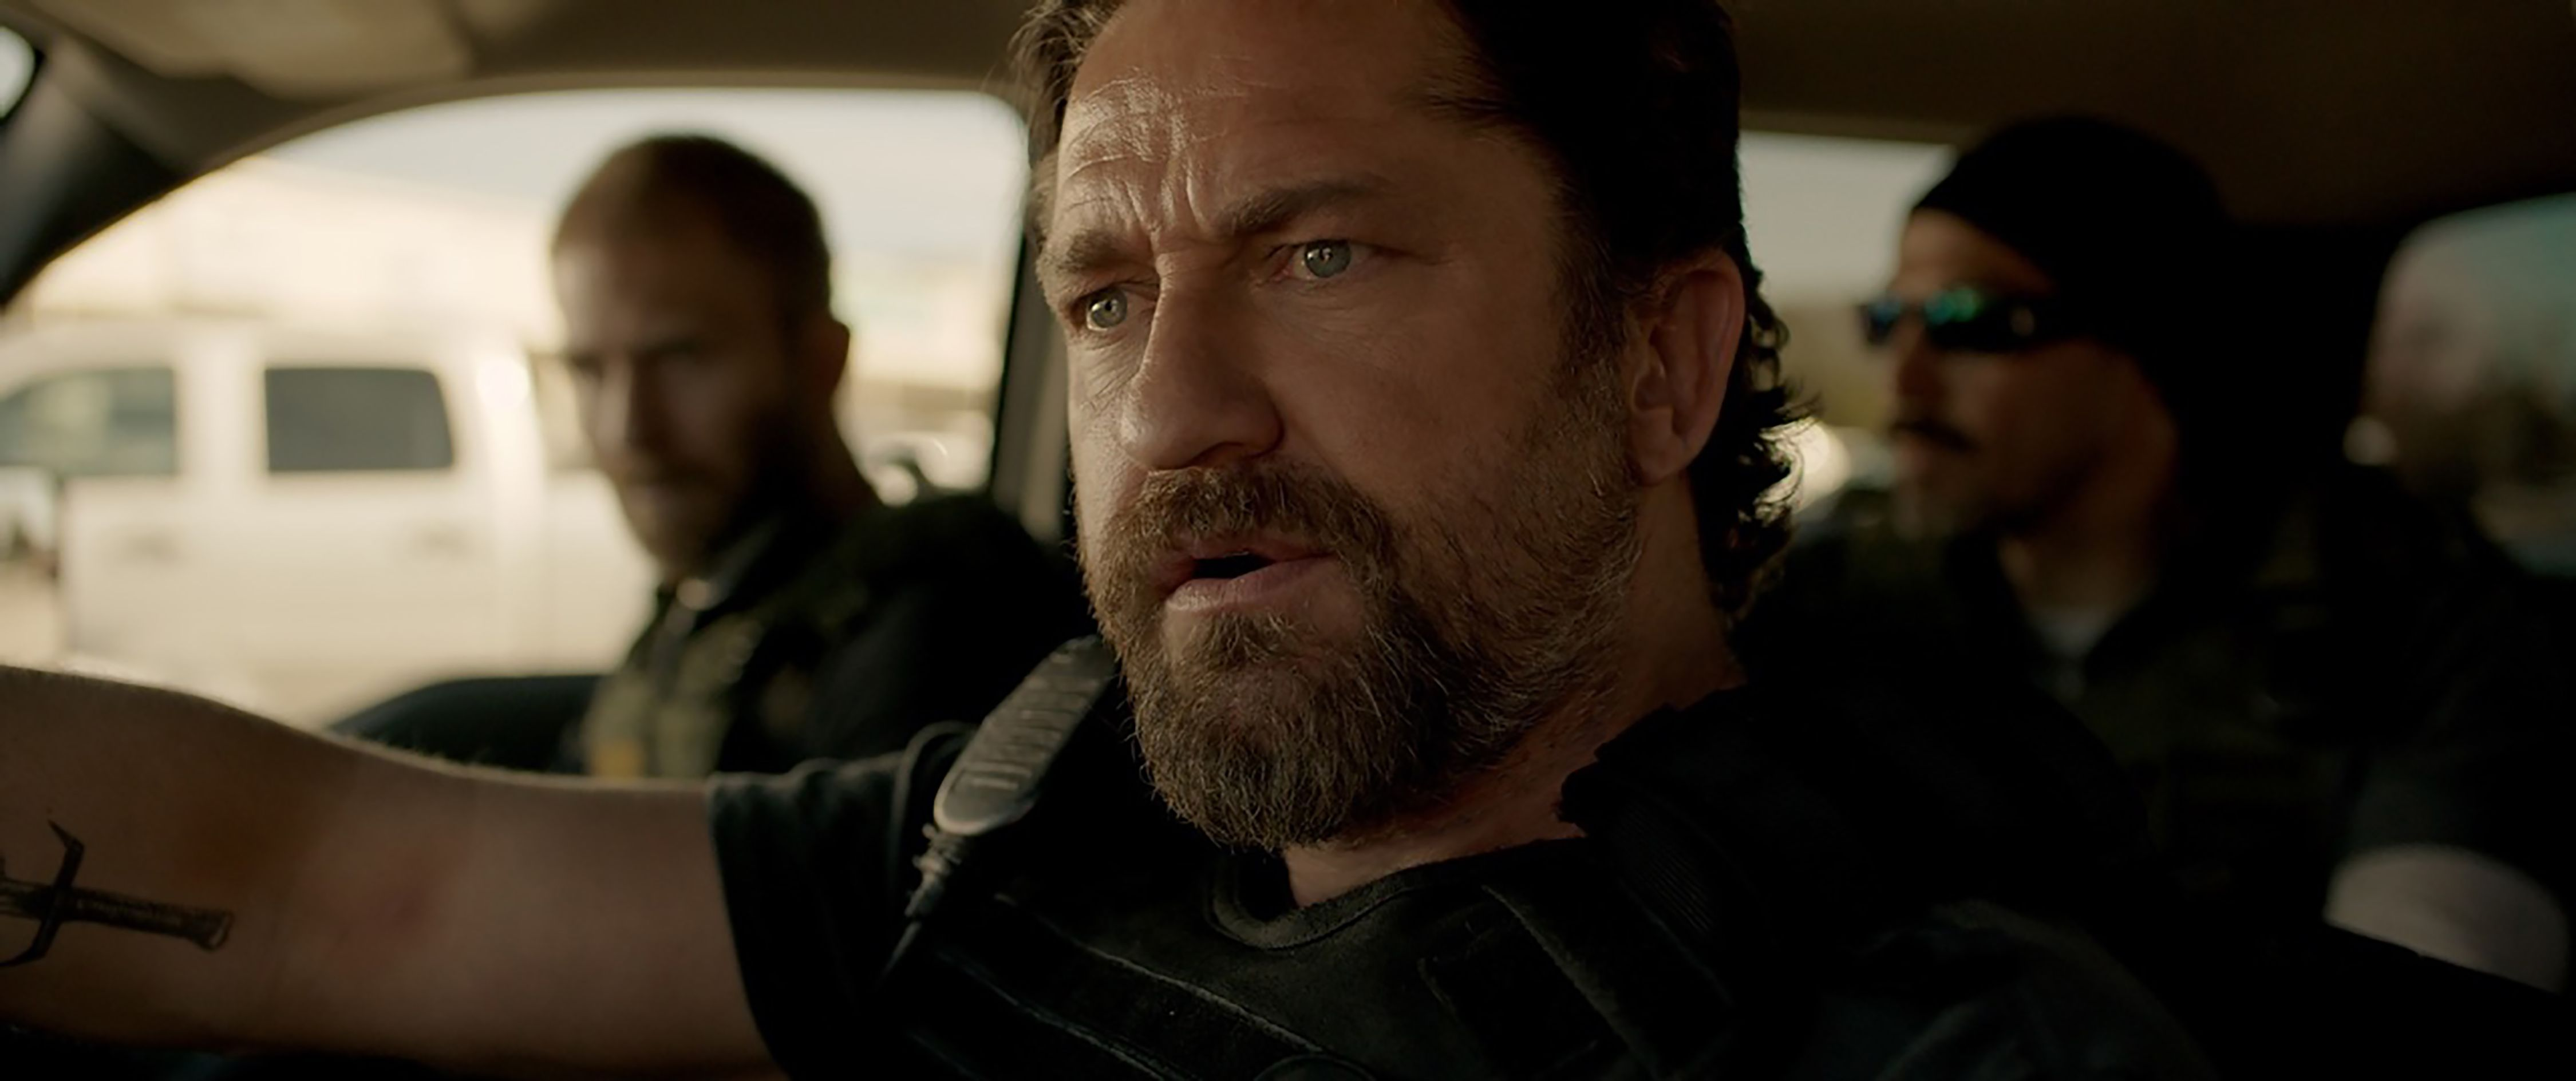 gerard butler den of thieves - 'Den of Thieves' Sequel Is a Go with Cast and Director Returning